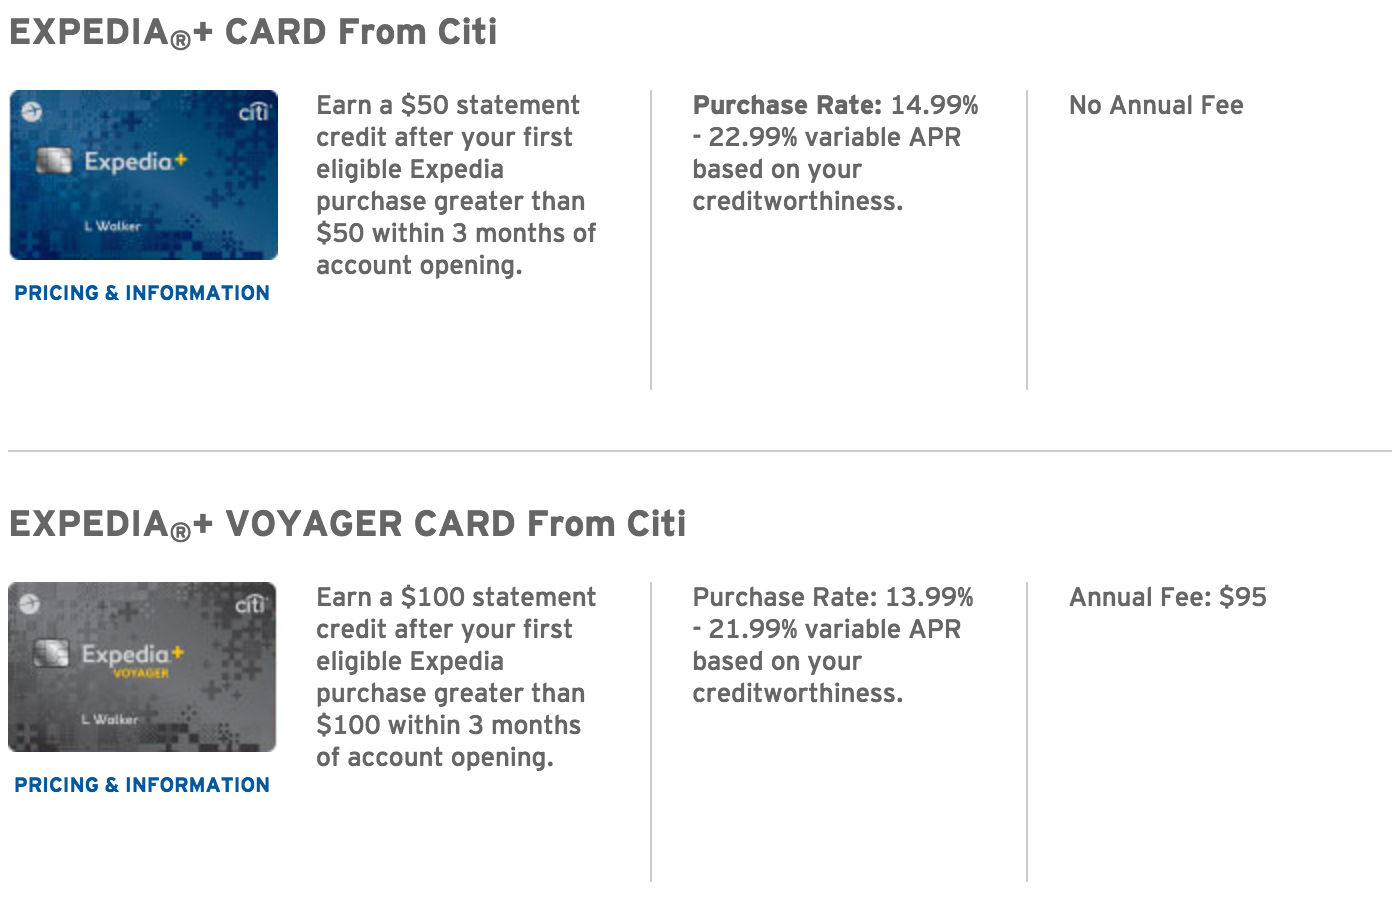 How to Apply for the Citi Expedia Credit Cards